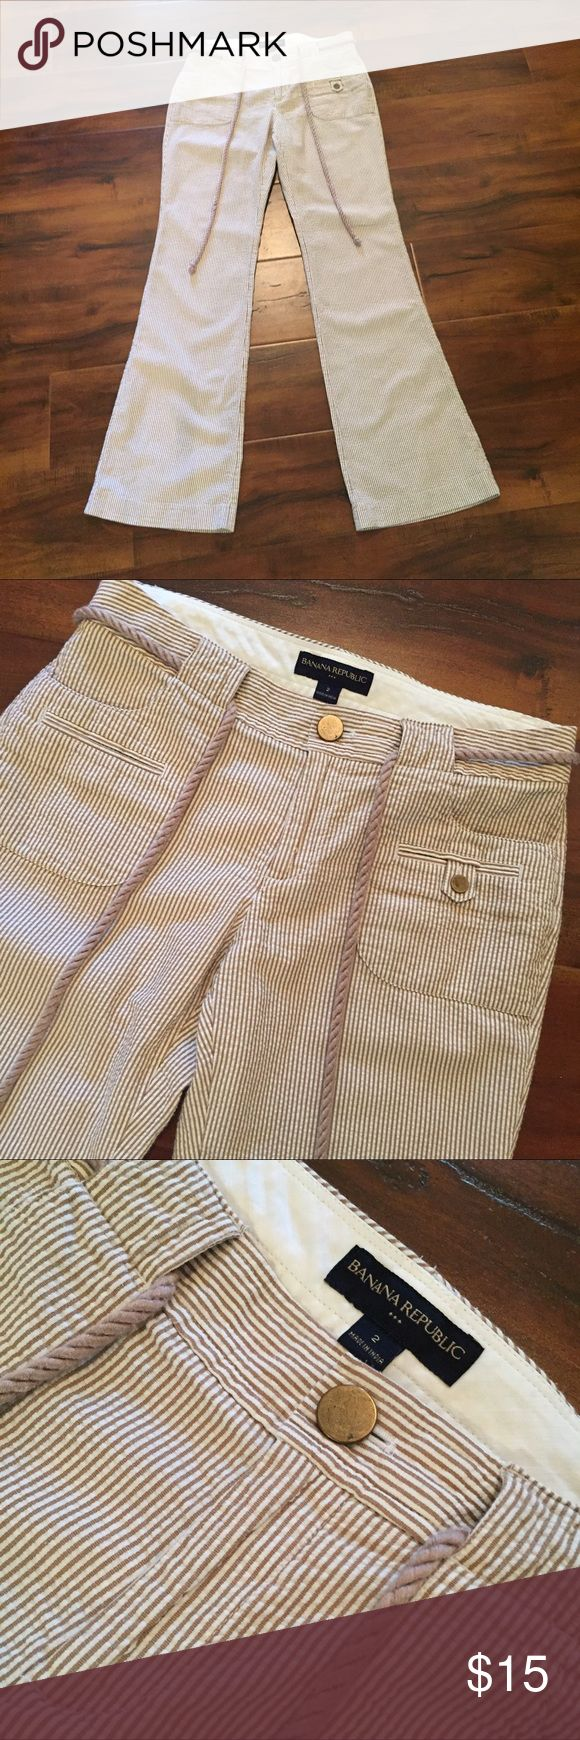 Banana Republic Seersucker Pant Size 2 💕 10% off two or more items. Unless otherwise noted, all items are in excellent condition. I am happy to negotiate, as well as create custom bundles to cut down shipping costs. Please feel free to ask any questions you may have about my items! I am here to help! Make me an offer I can't refuse! 😘 Banana Republic Pants Boot Cut & Flare